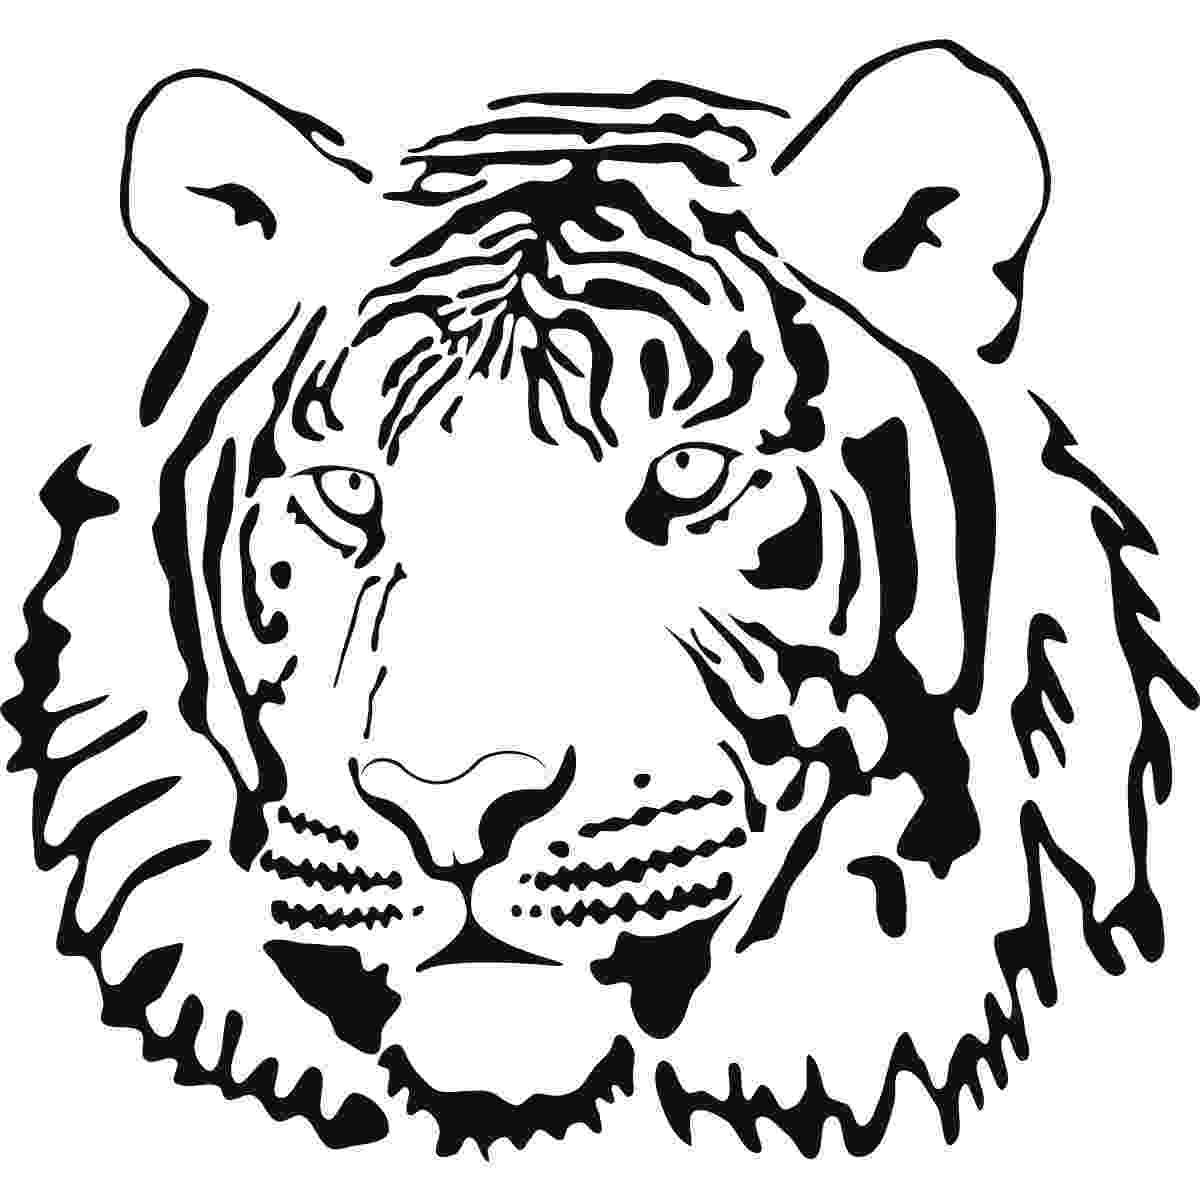 tiger pictures to print and color free printable tiger coloring pages for kids color pictures tiger print to and